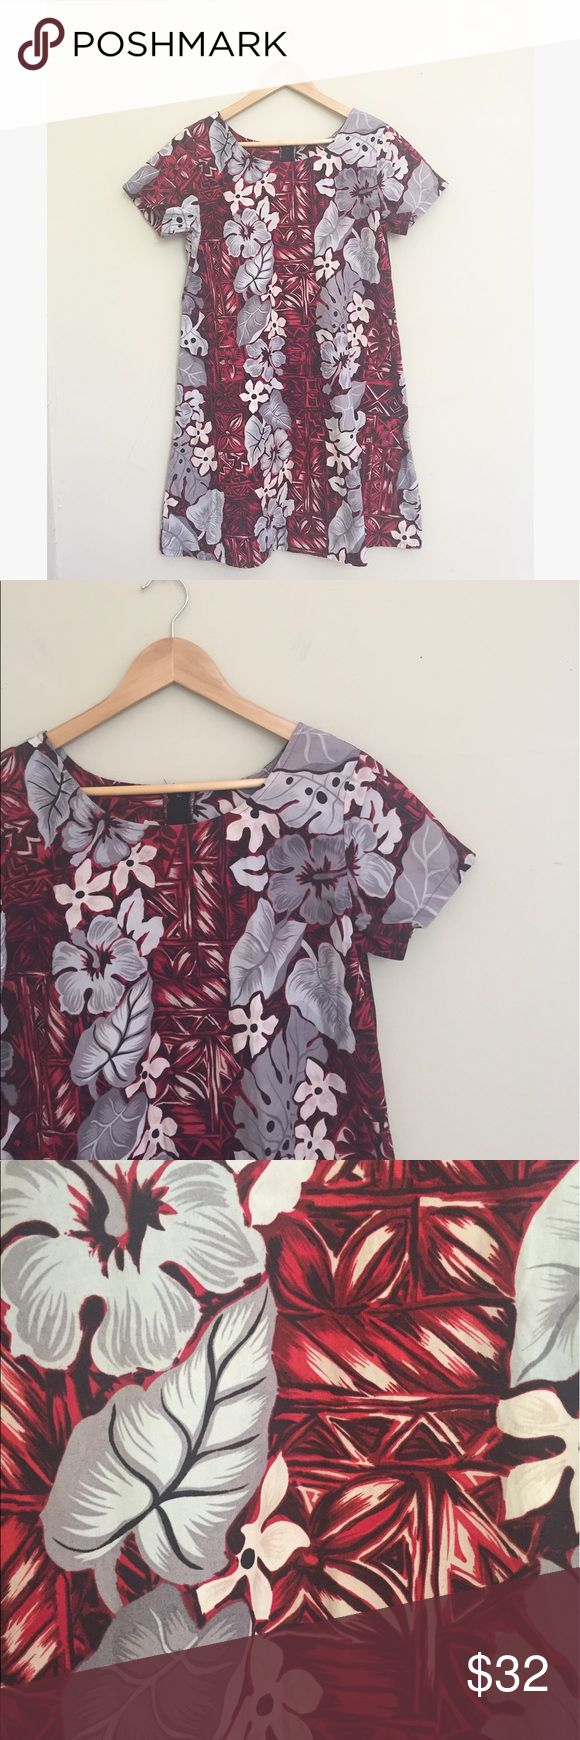 "Hawaiian Hibiscus Aloha Floral T Shirt Dress Red cotton T shirt dress with silver Hibiscus and Leaf Print. Back zip, 34"" long, 20"" pit to pit. No size, measured to a M/L. No trades, offers welcome! Hawaiian Flavor Dresses"